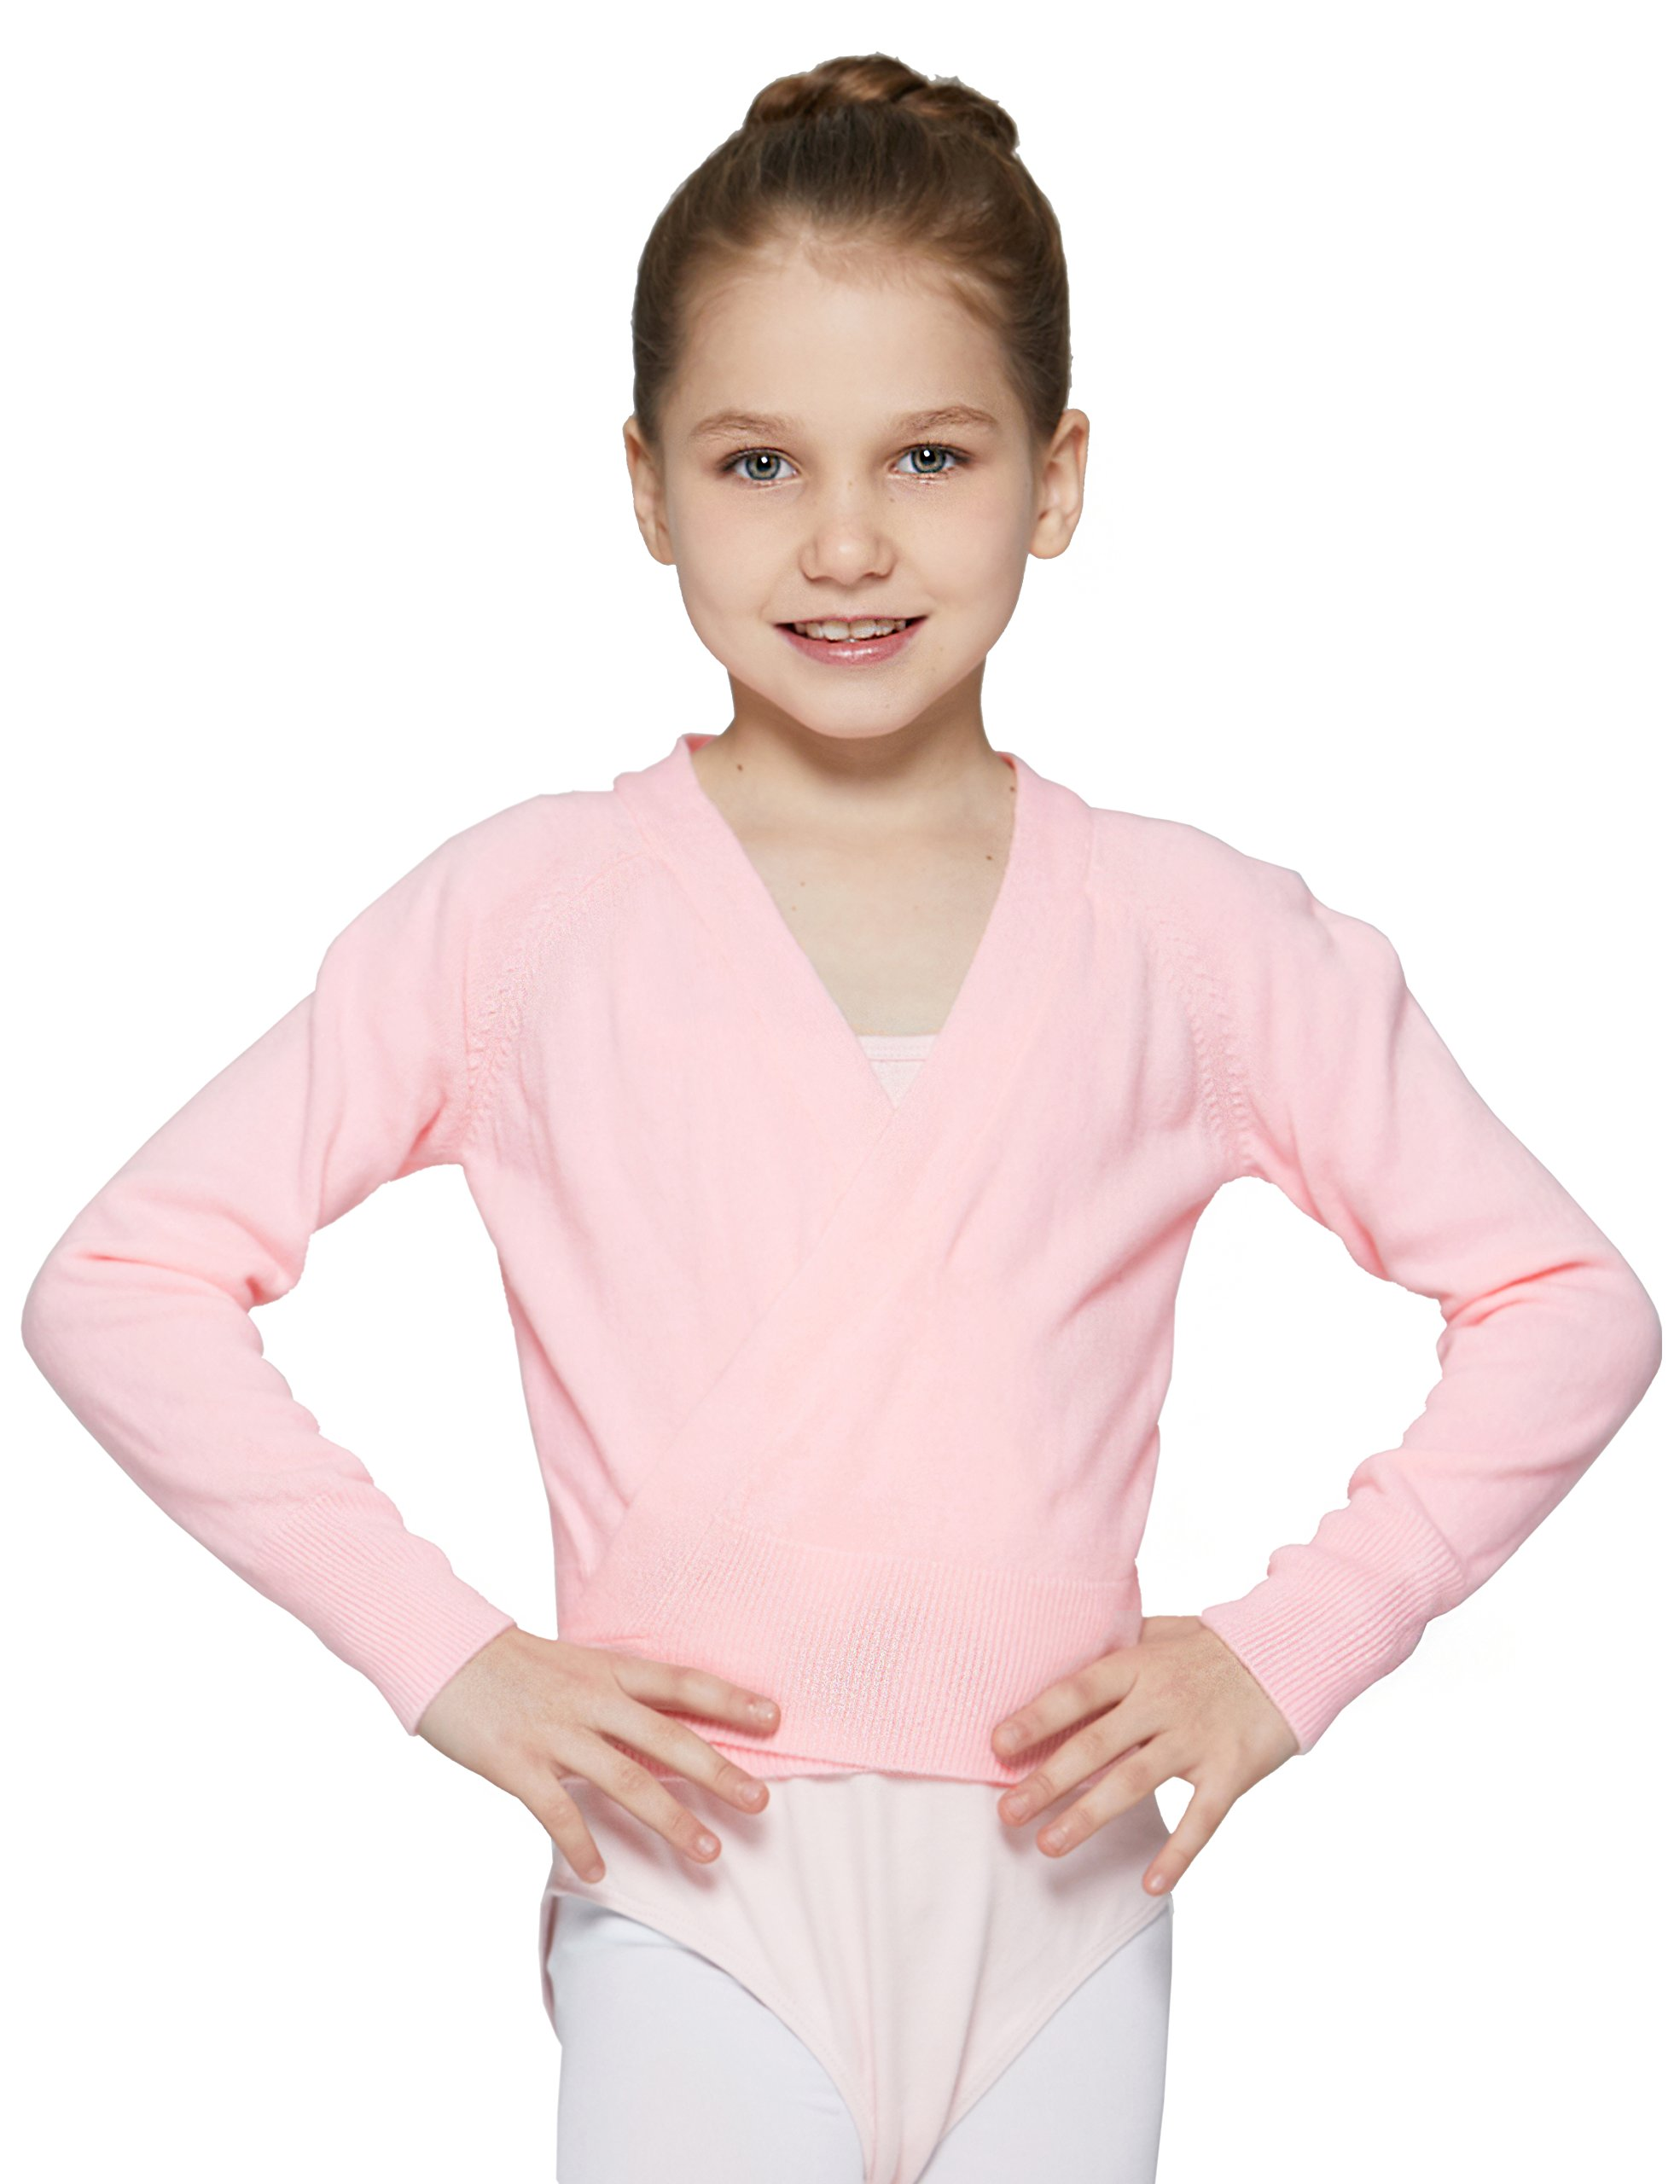 Knit Wrap Sweater for Girls by Mdnmd, Medium, Pink